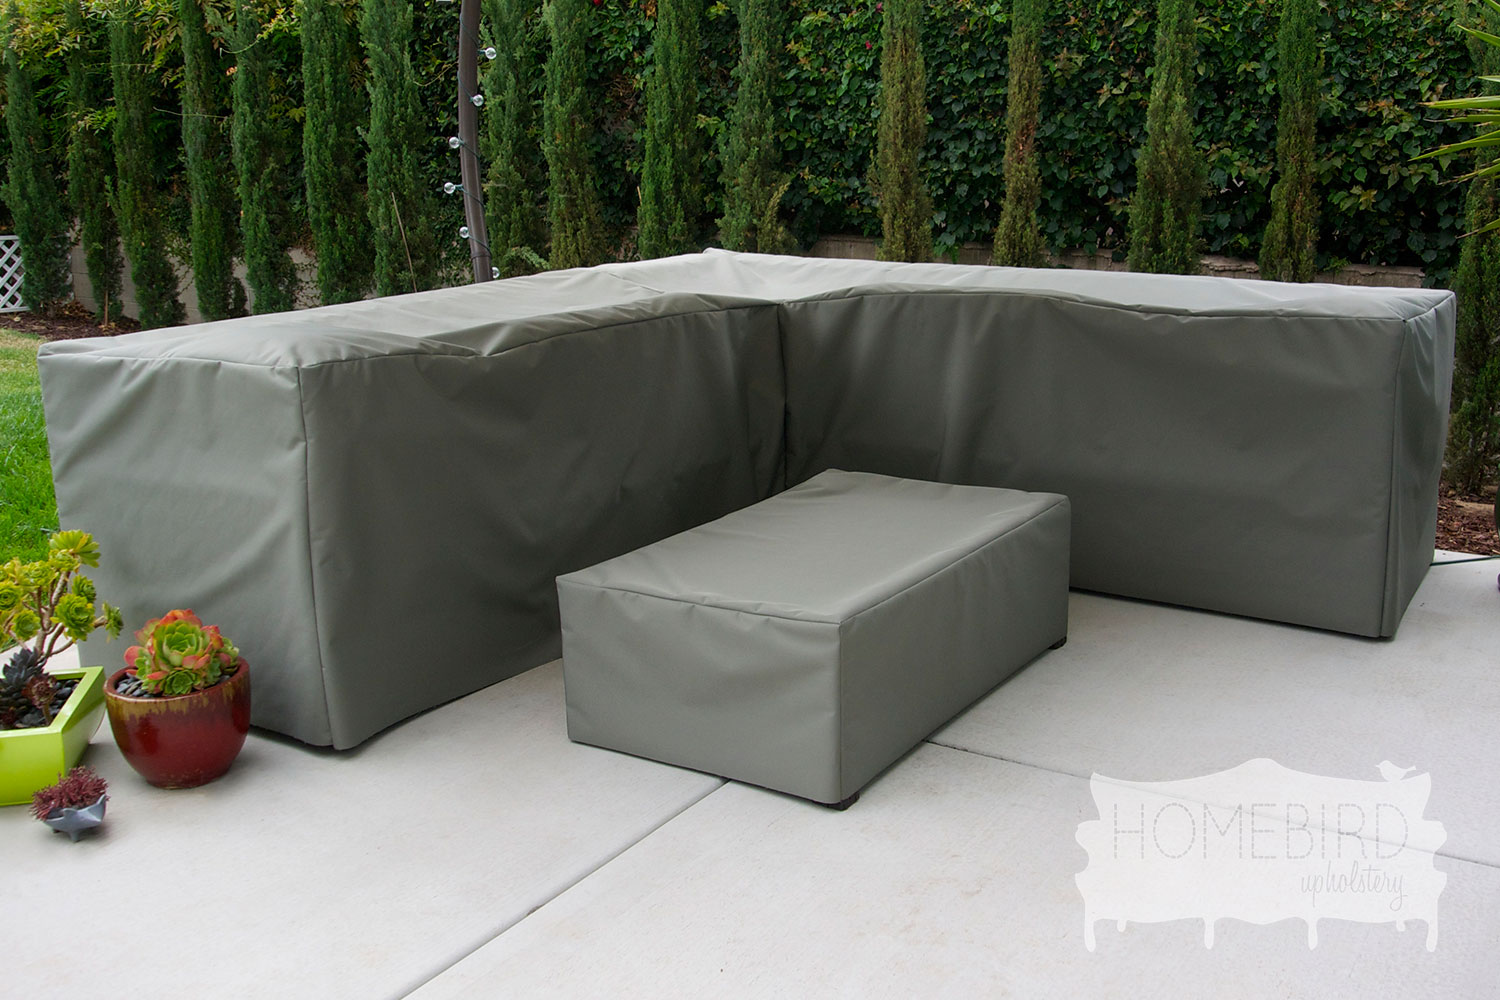 Patio furniture covers | Hawk Haven on garden cloth covers, concrete covers, garden furniture cushion, garden bench, patio furniture cover, garden bed covers, outdoor covers, garden plant covers, chairs covers, furniture cushion, patio furniture, garden screen covers, teak garden furniture, garden tables, shoes covers, sofas covers, lighting covers, storage covers, table covers, garden wall decor, garden pest control covers, garden topiaries, garden chairs, garden patio covers, wallpaper covers, wooden garden furniture, garden awnings,